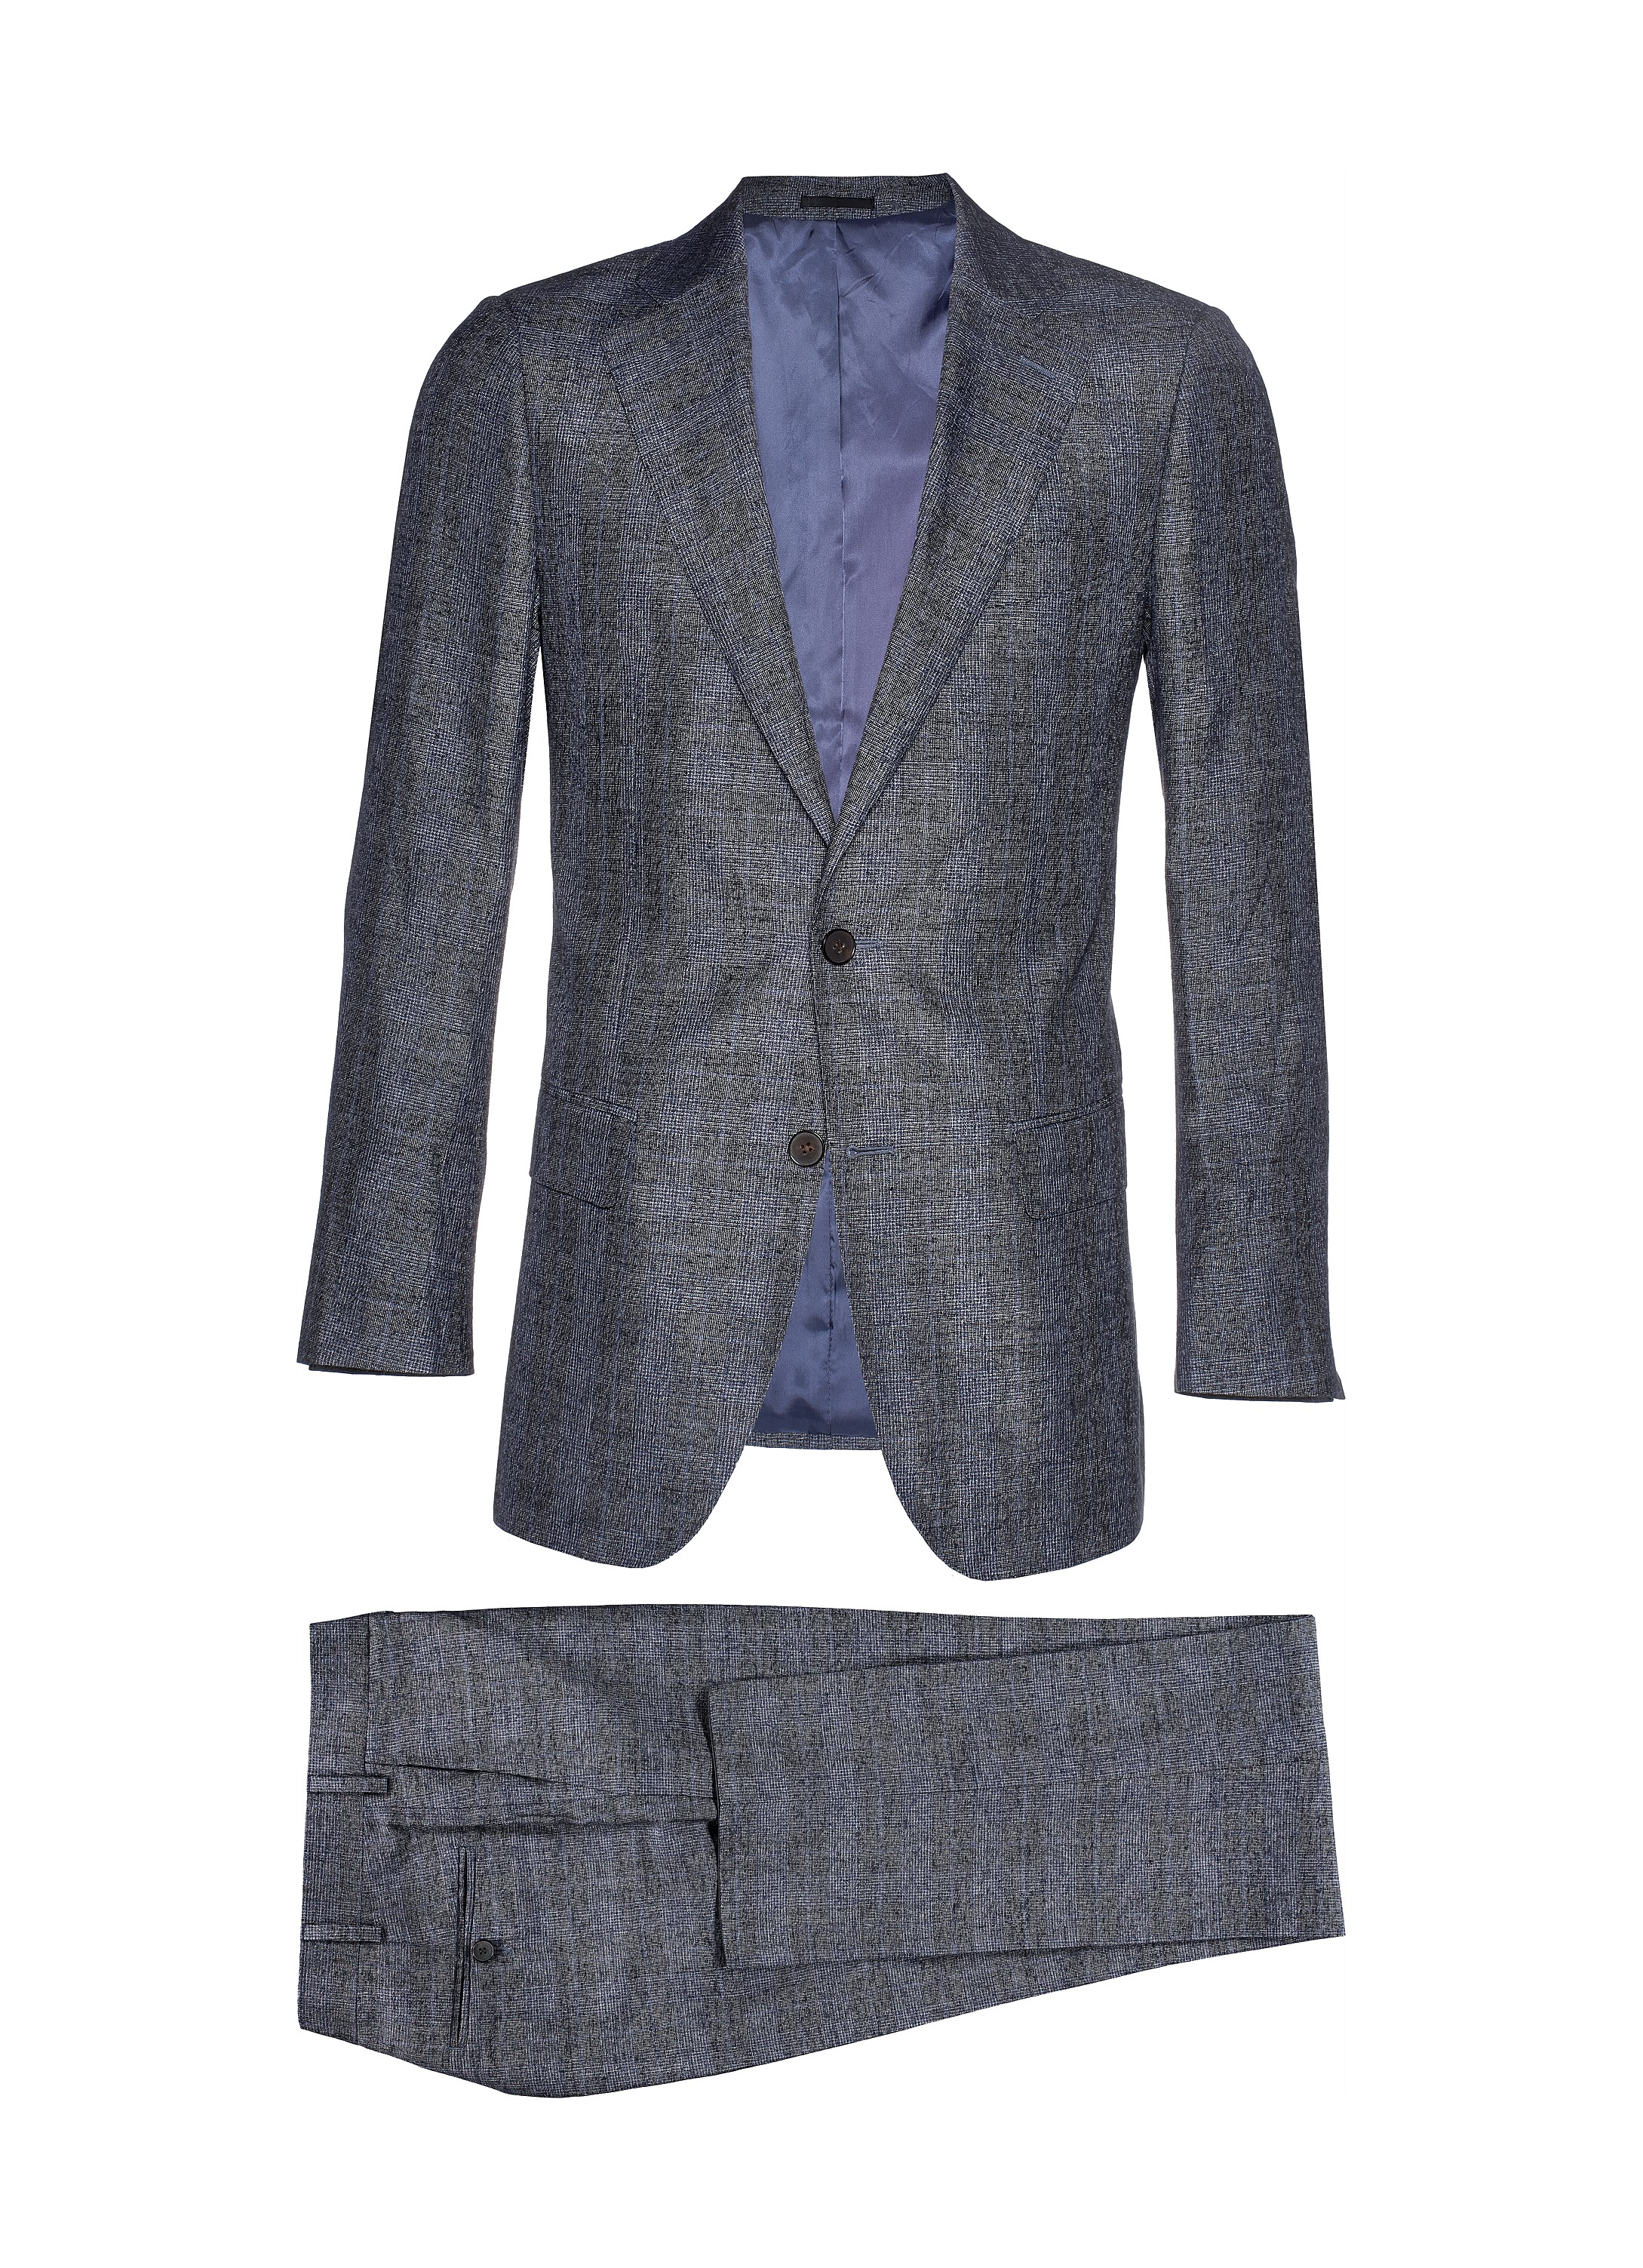 http://statics.suitsupply.com/images/products/Suits/zoom/Suits_Grey_Check_Lazio_P3826_Suitsupply_Online_Store_5.jpg